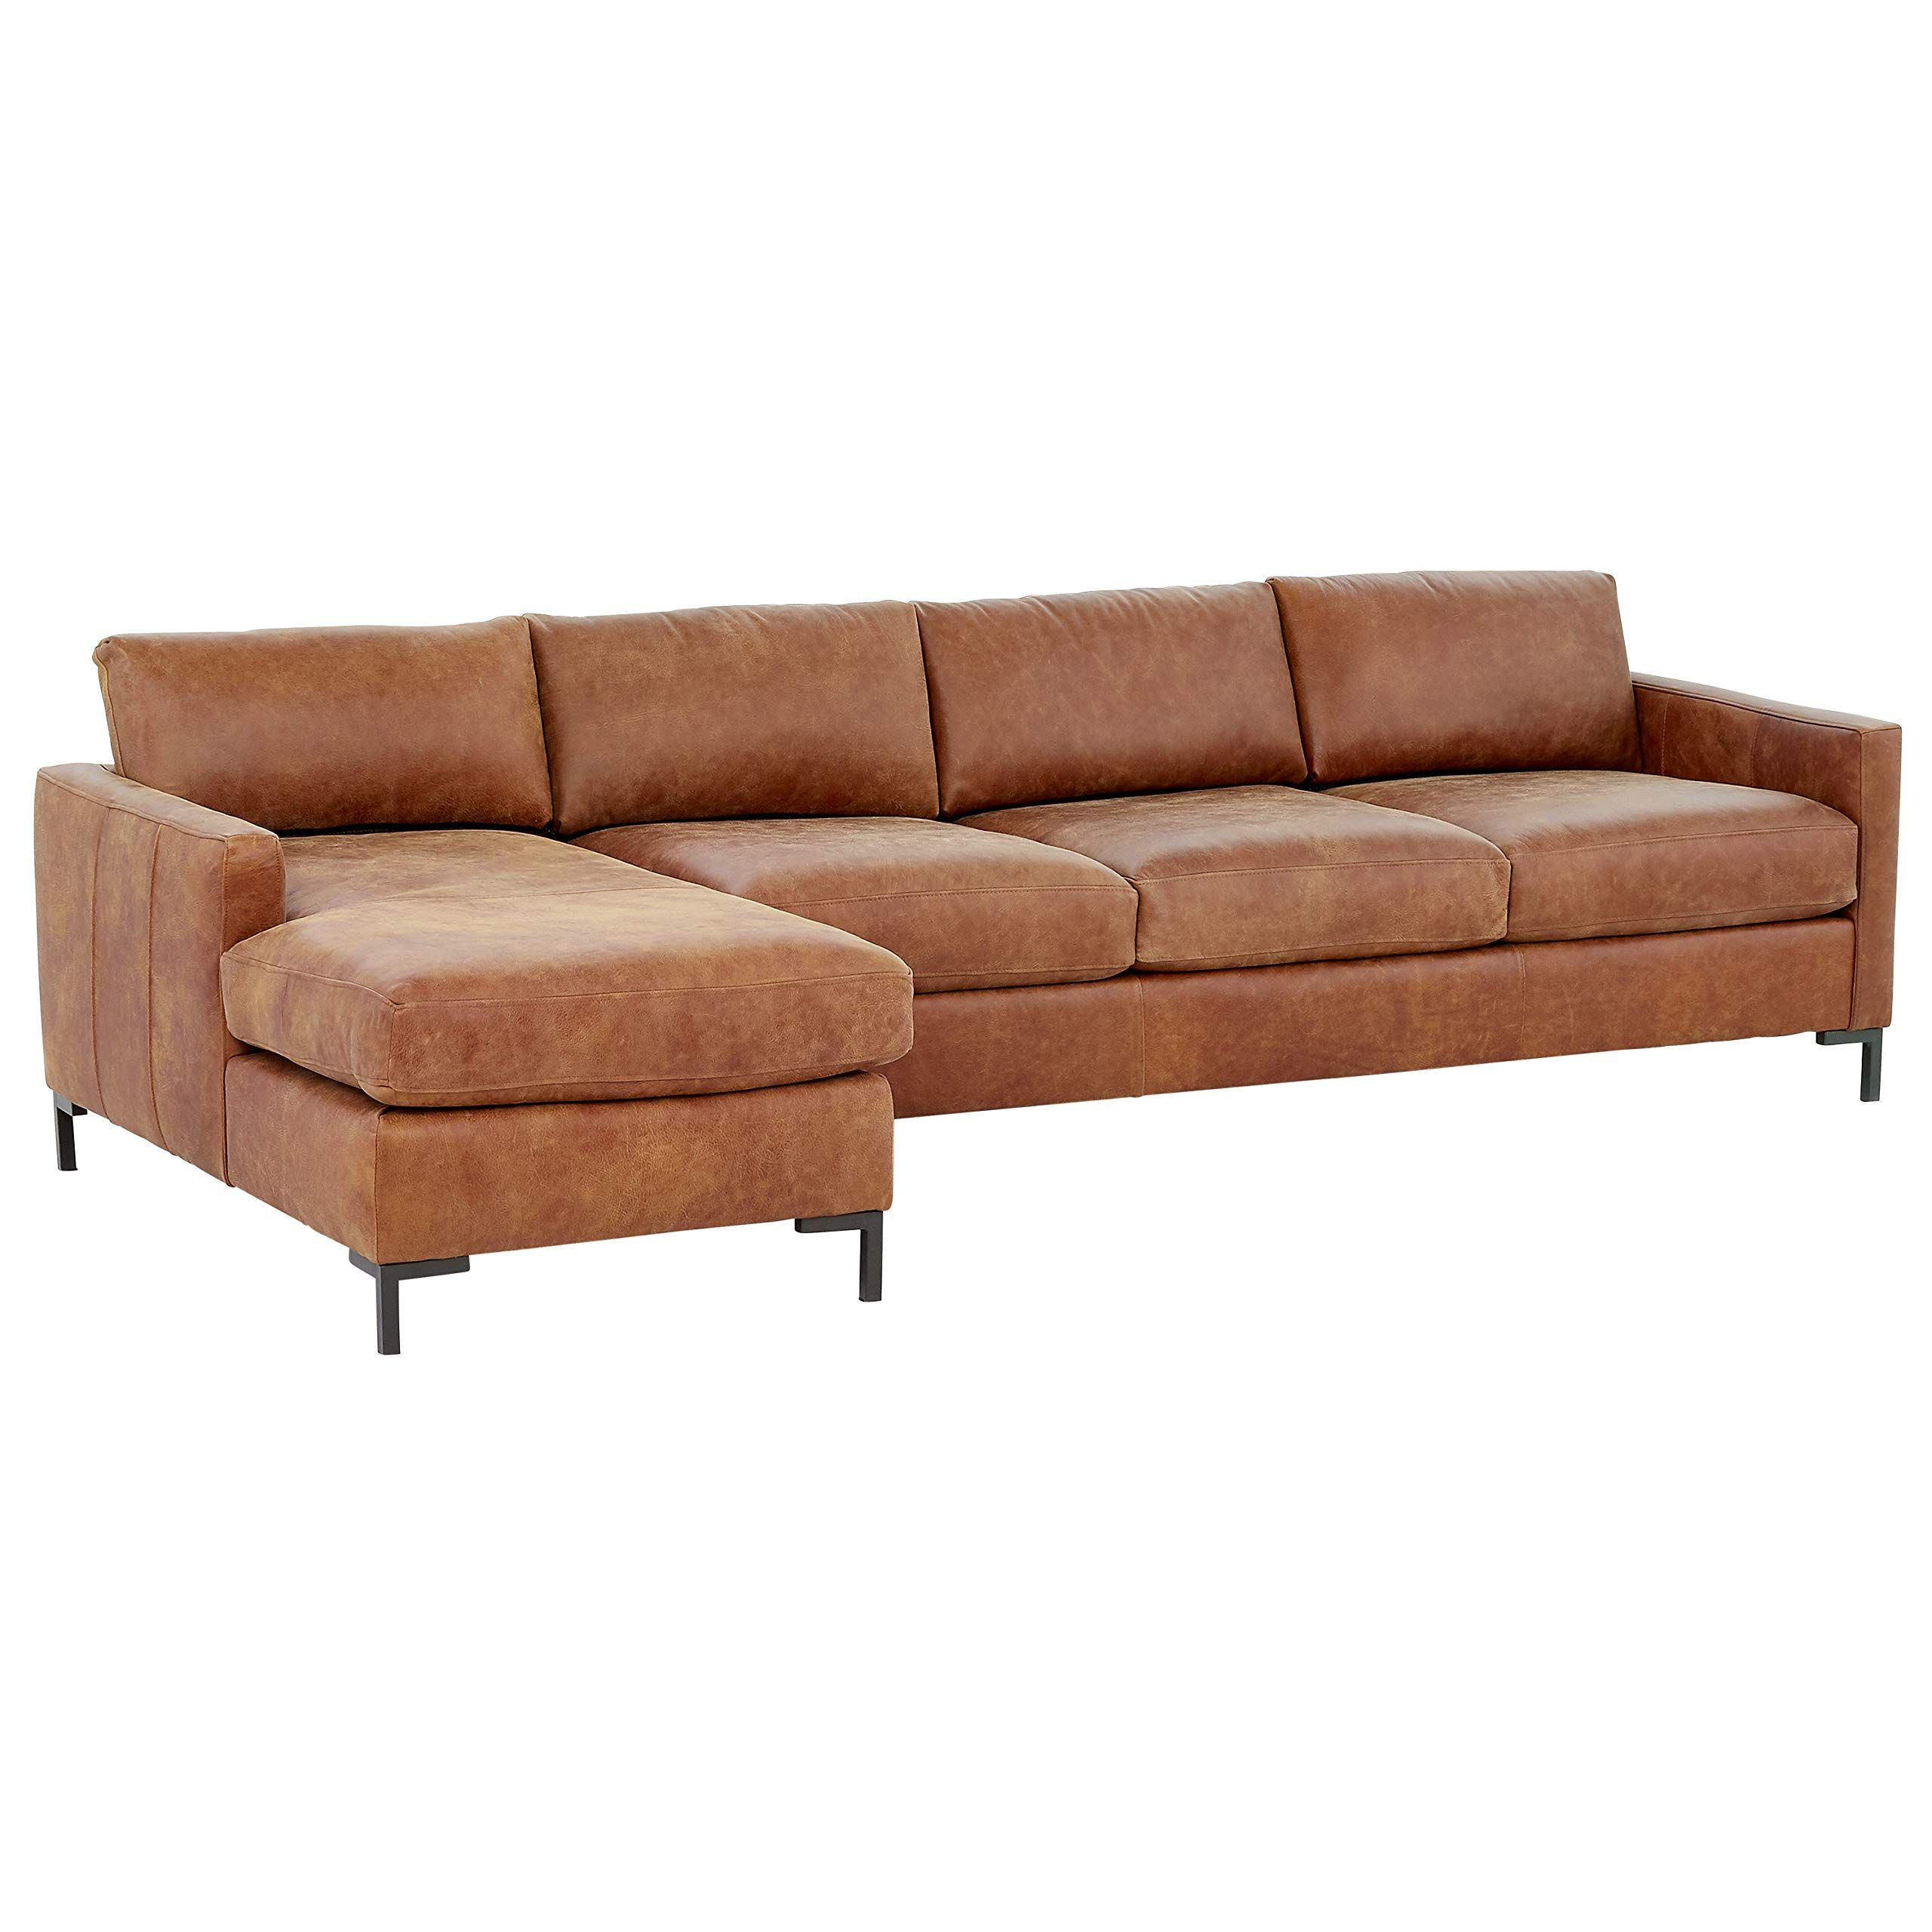 Rivet Edgewest Modern Left Facing Sofa Chaise Sectional Leather 115 W Saddle In 2020 With Images Sectional Sofa Beige Chaise Sofa Upholstered Sofa